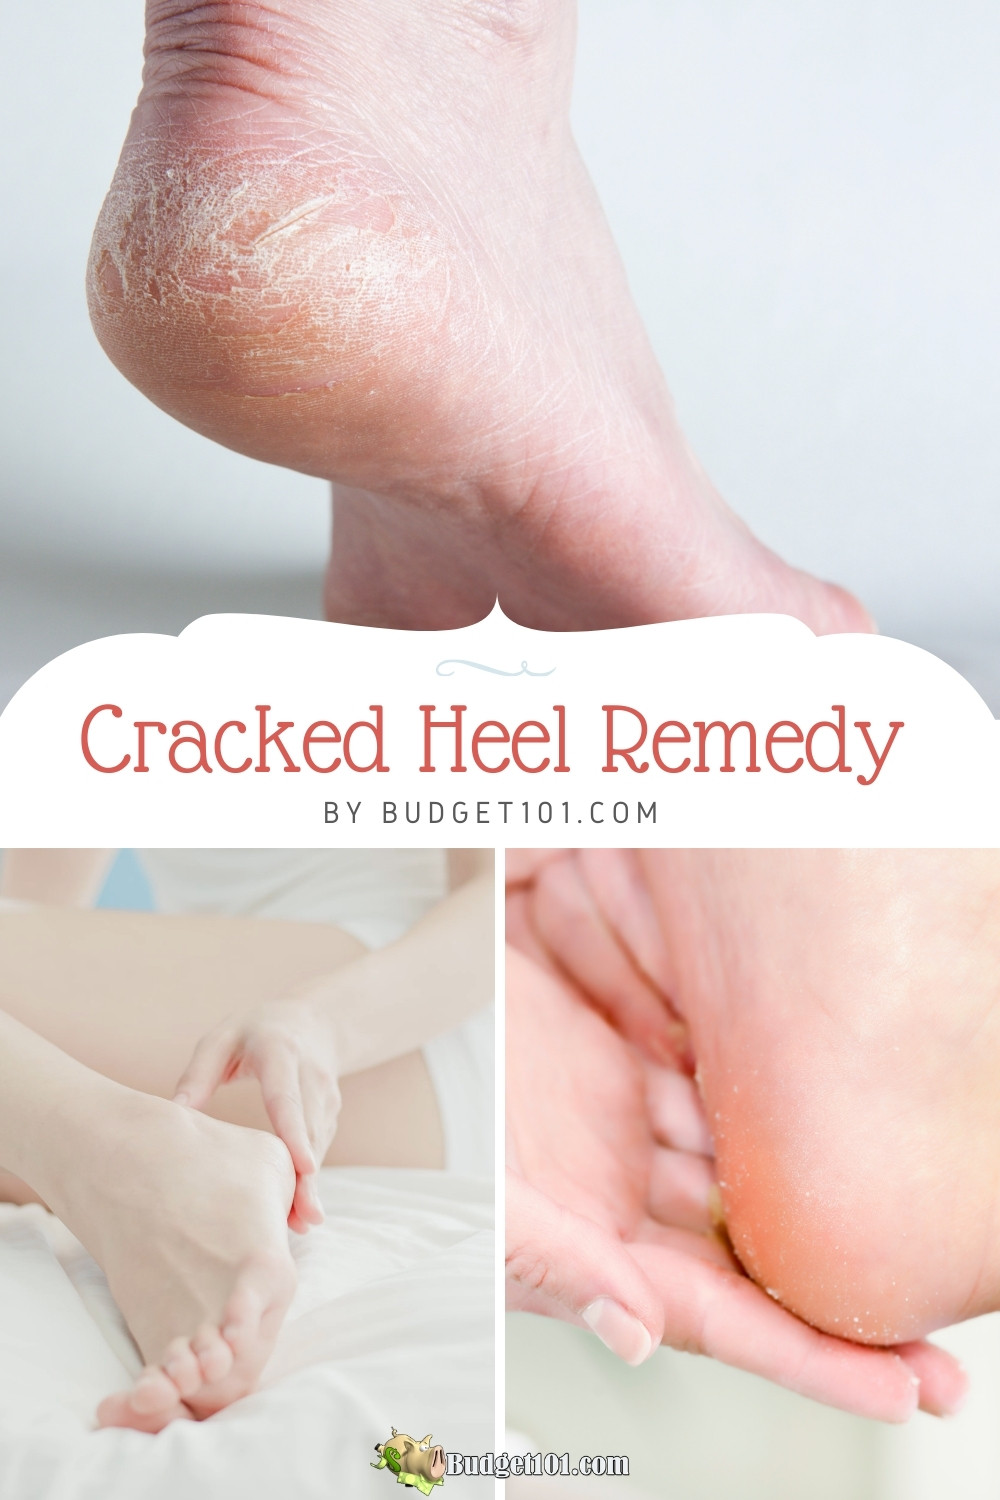 how to fix cracked heels at home, easy remedy for fast relief #crackedheels #pedicure #footcare #DIY #Budget101 #homeremedies